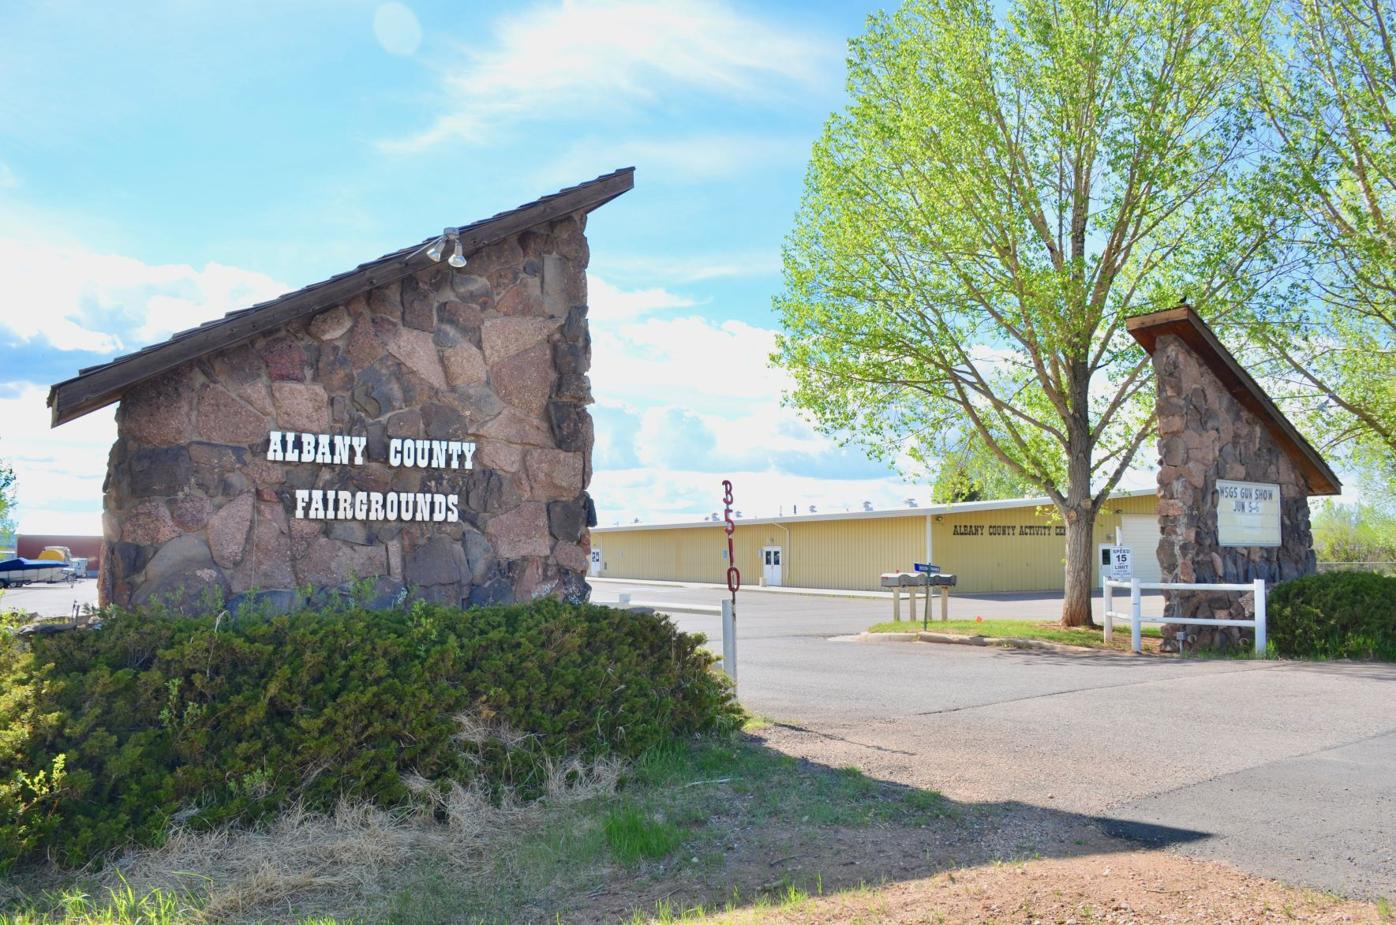 Albany County Fairgrounds